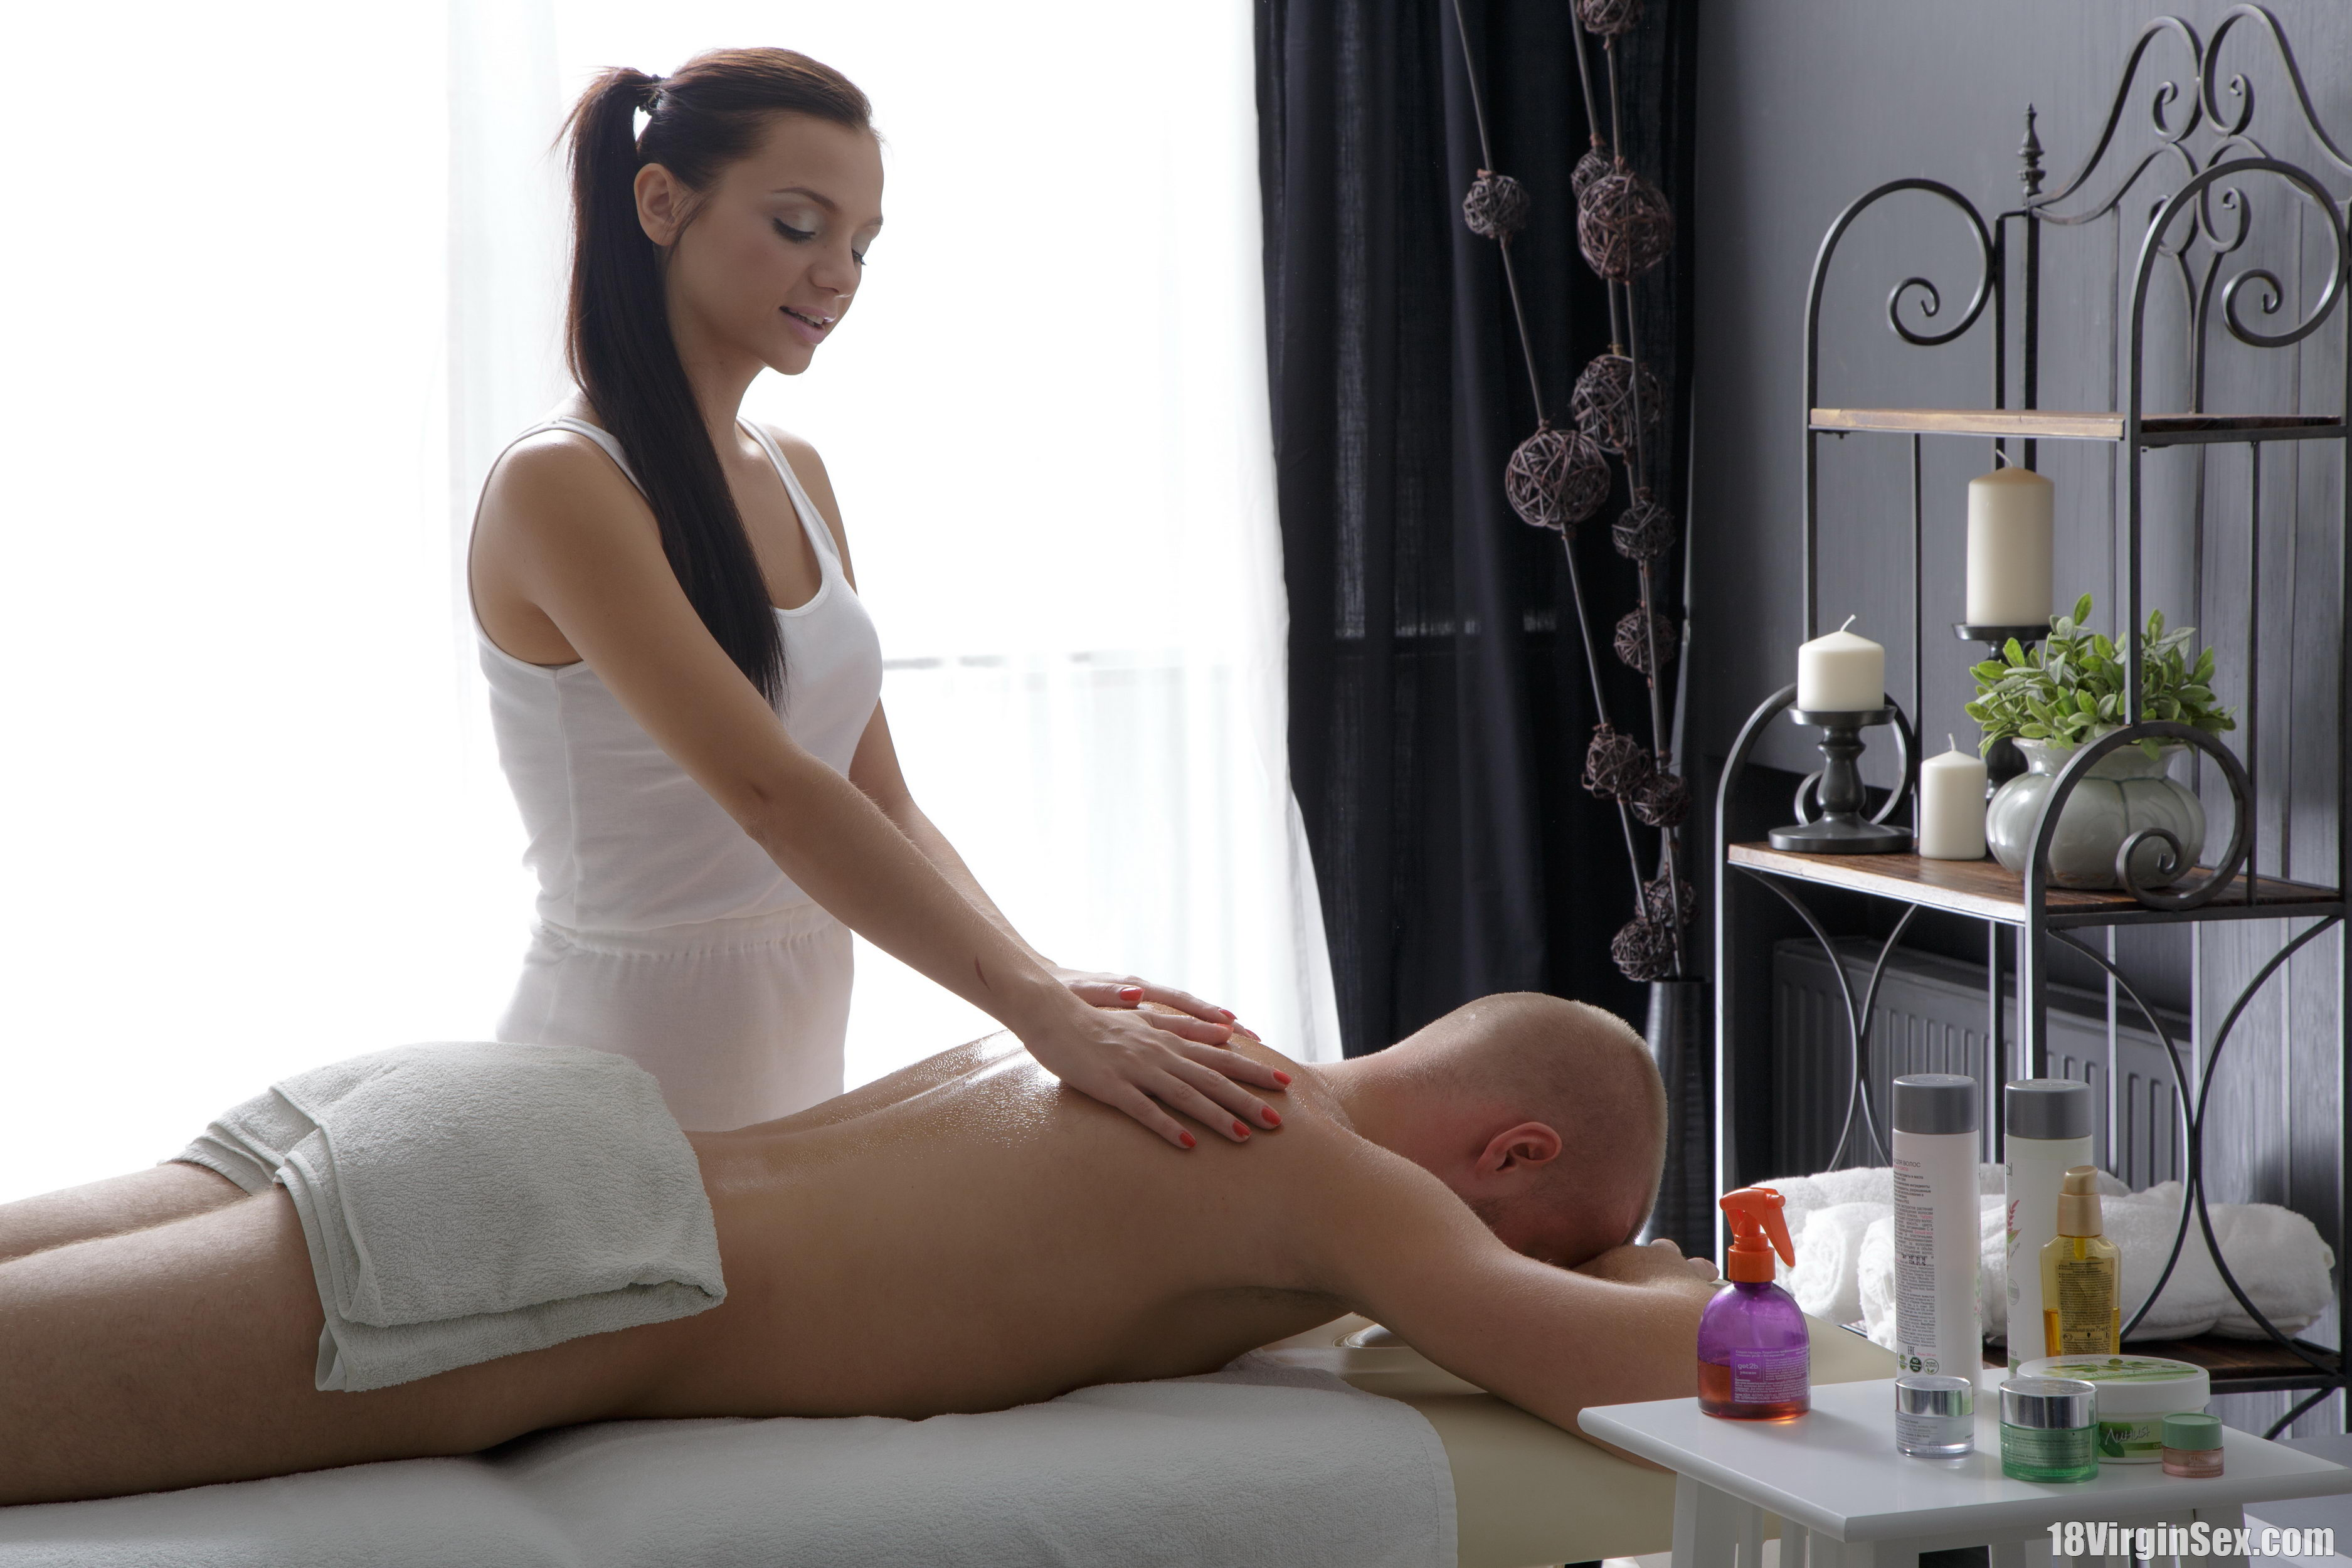 18 virgin sex ludmila gets a massage from her new client 4